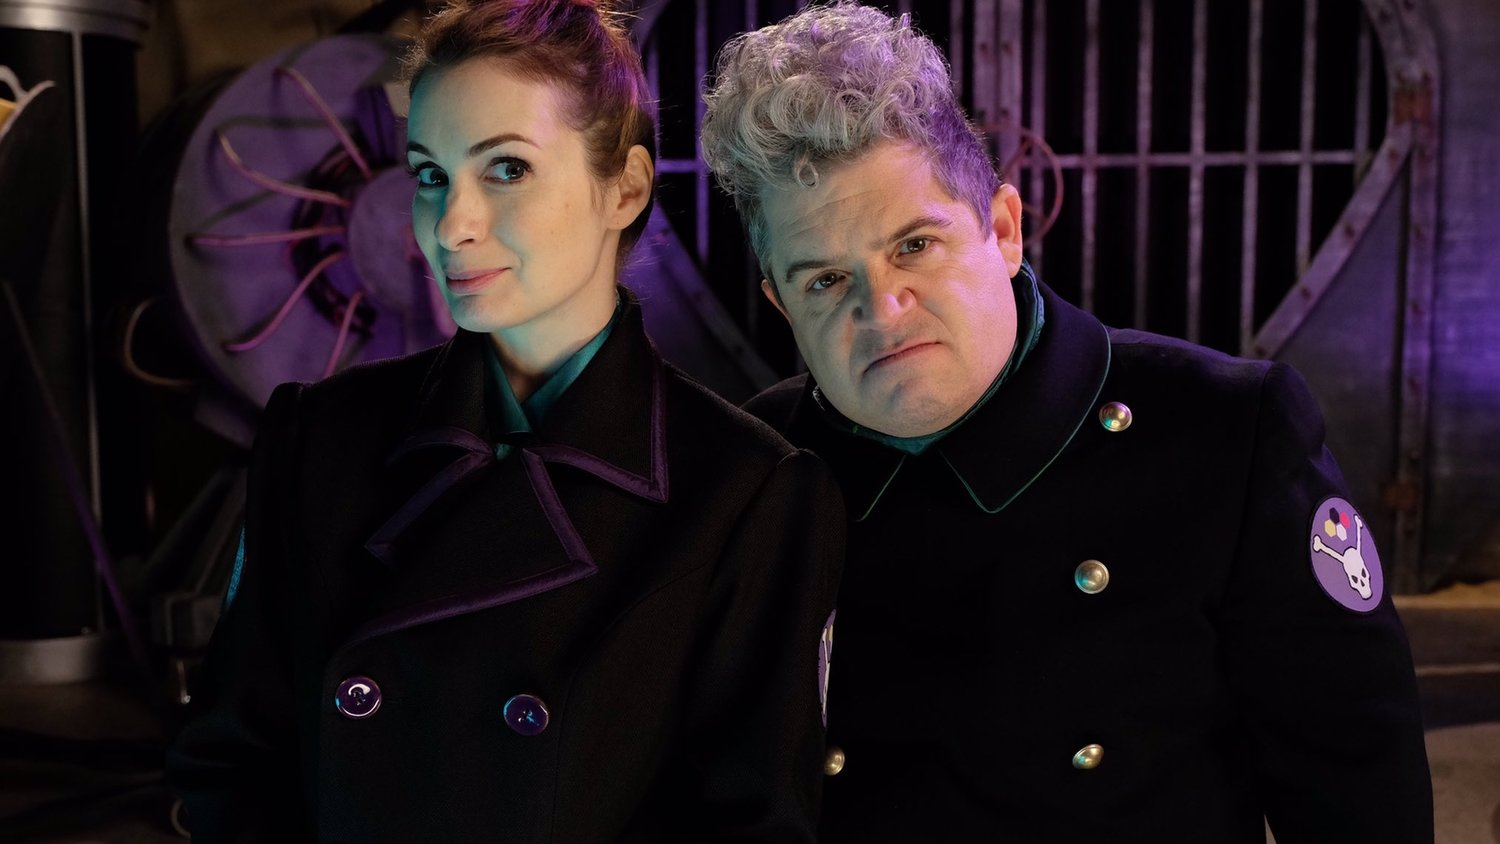 New Photo of Felicia Day and Patton Oswalt in MYSTERY SCIENCE THEATER 3000